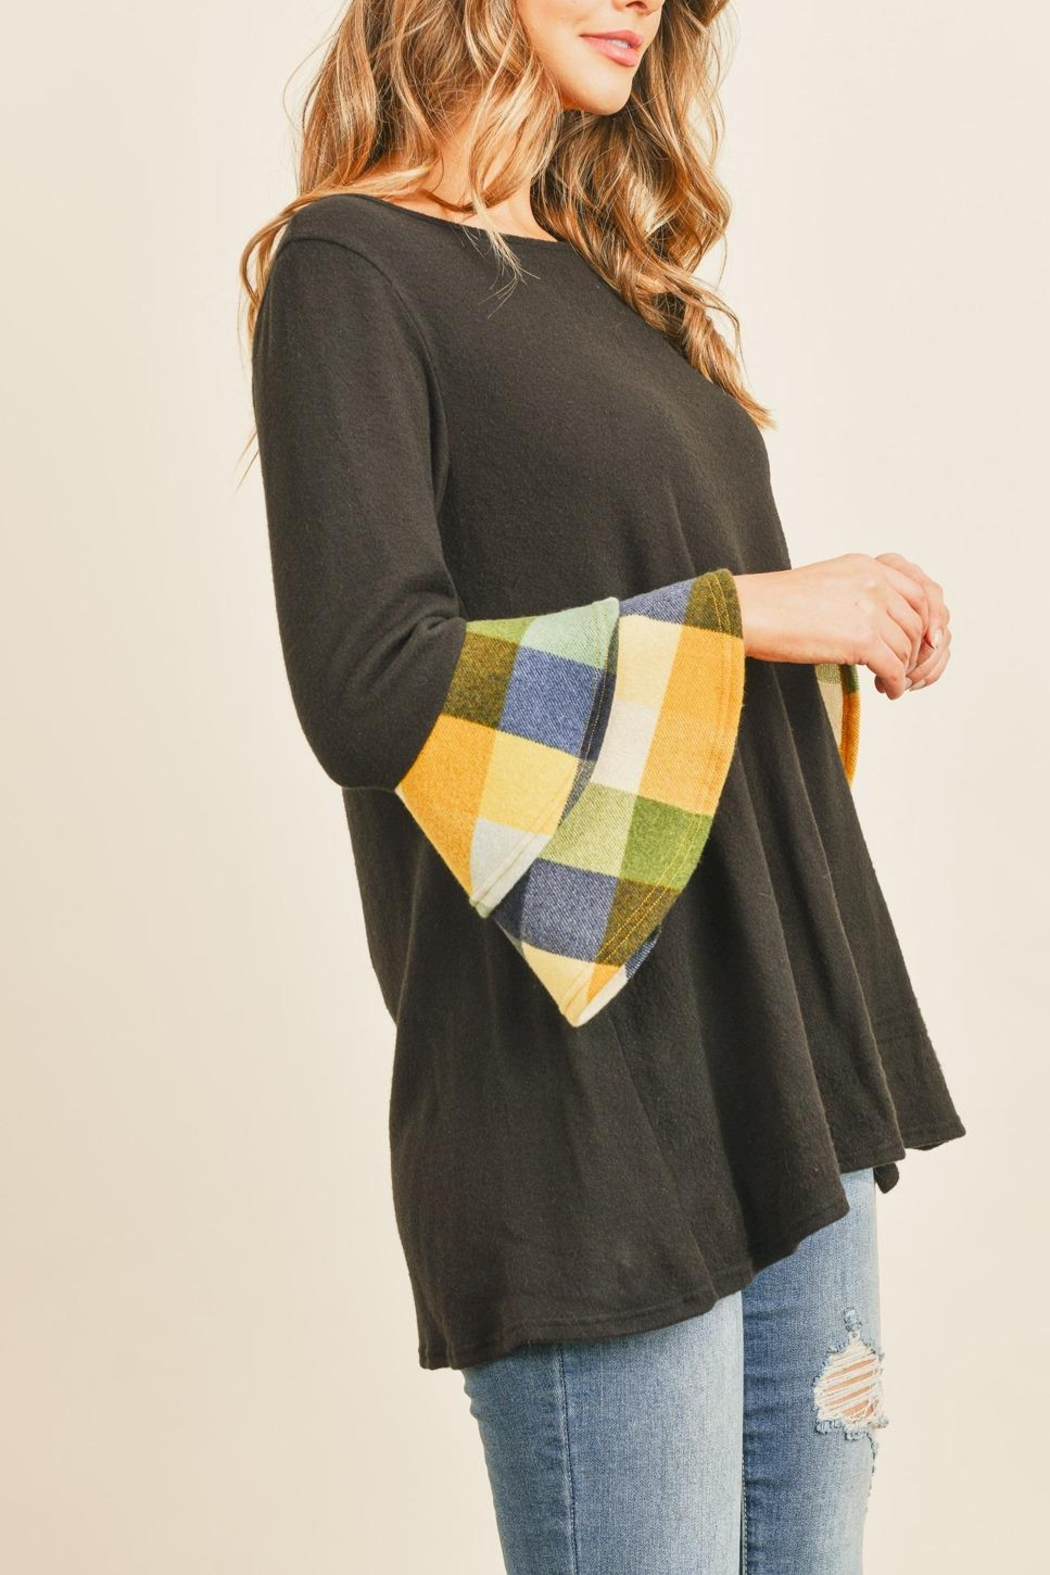 Riah Fashion Plaid-Layered-Bell-Sleeve-Boat-Neck-Solid-Top - Back Cropped Image